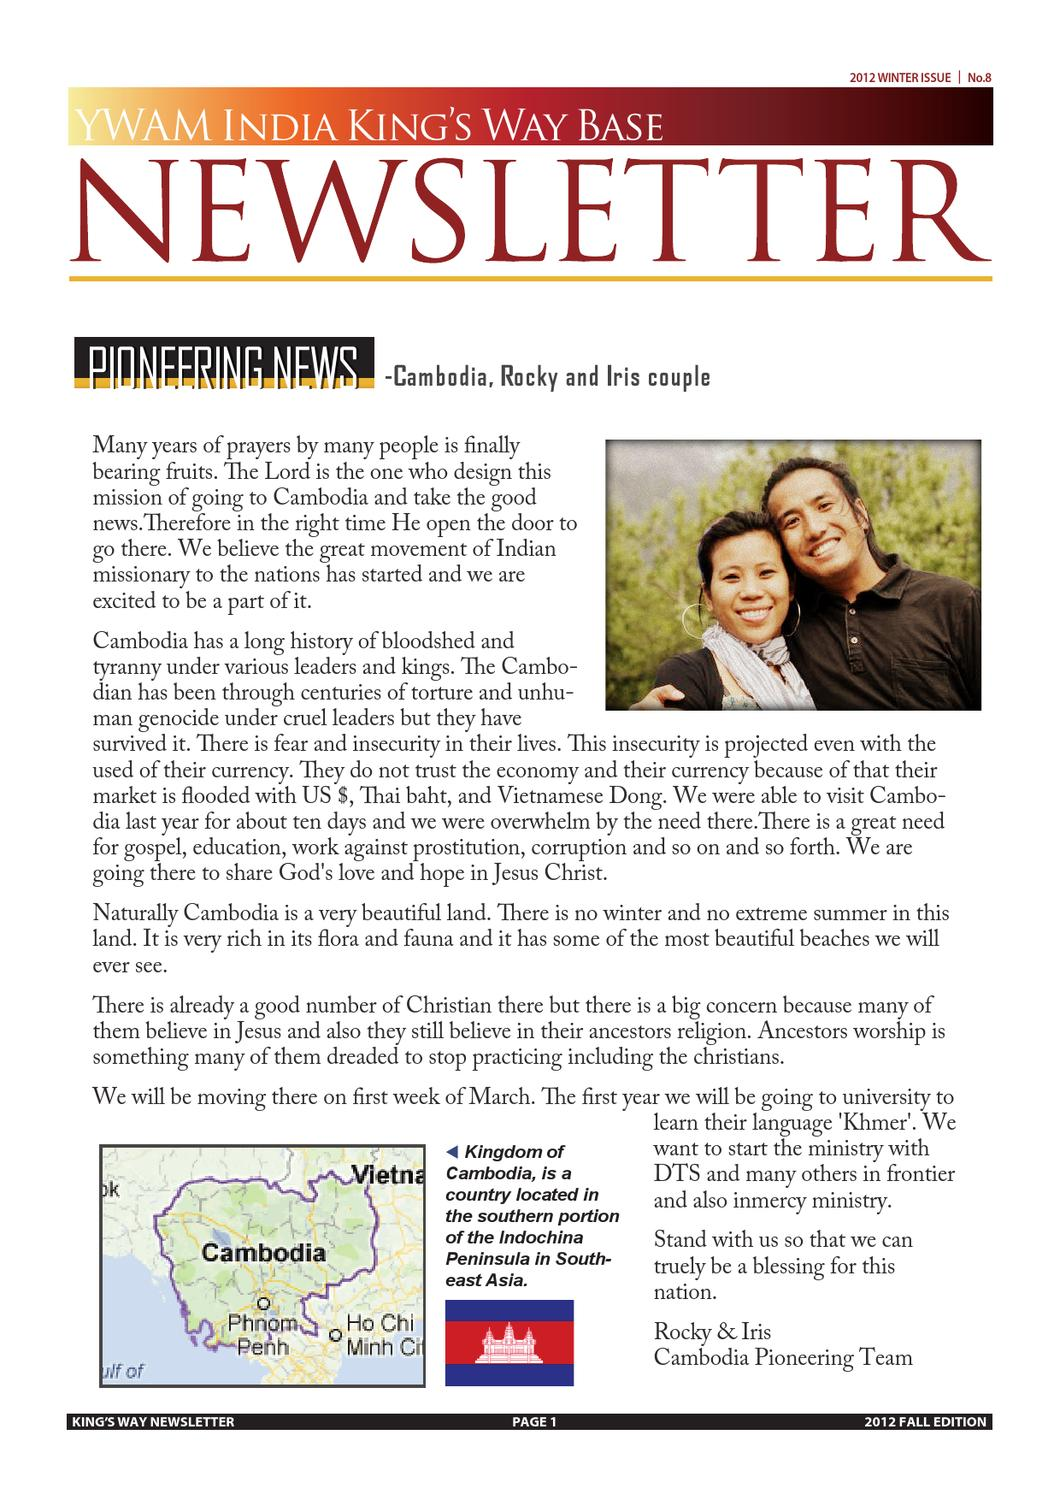 YWAM King's Way Newsletter 2012 Winter (Eng) by YWAM King's